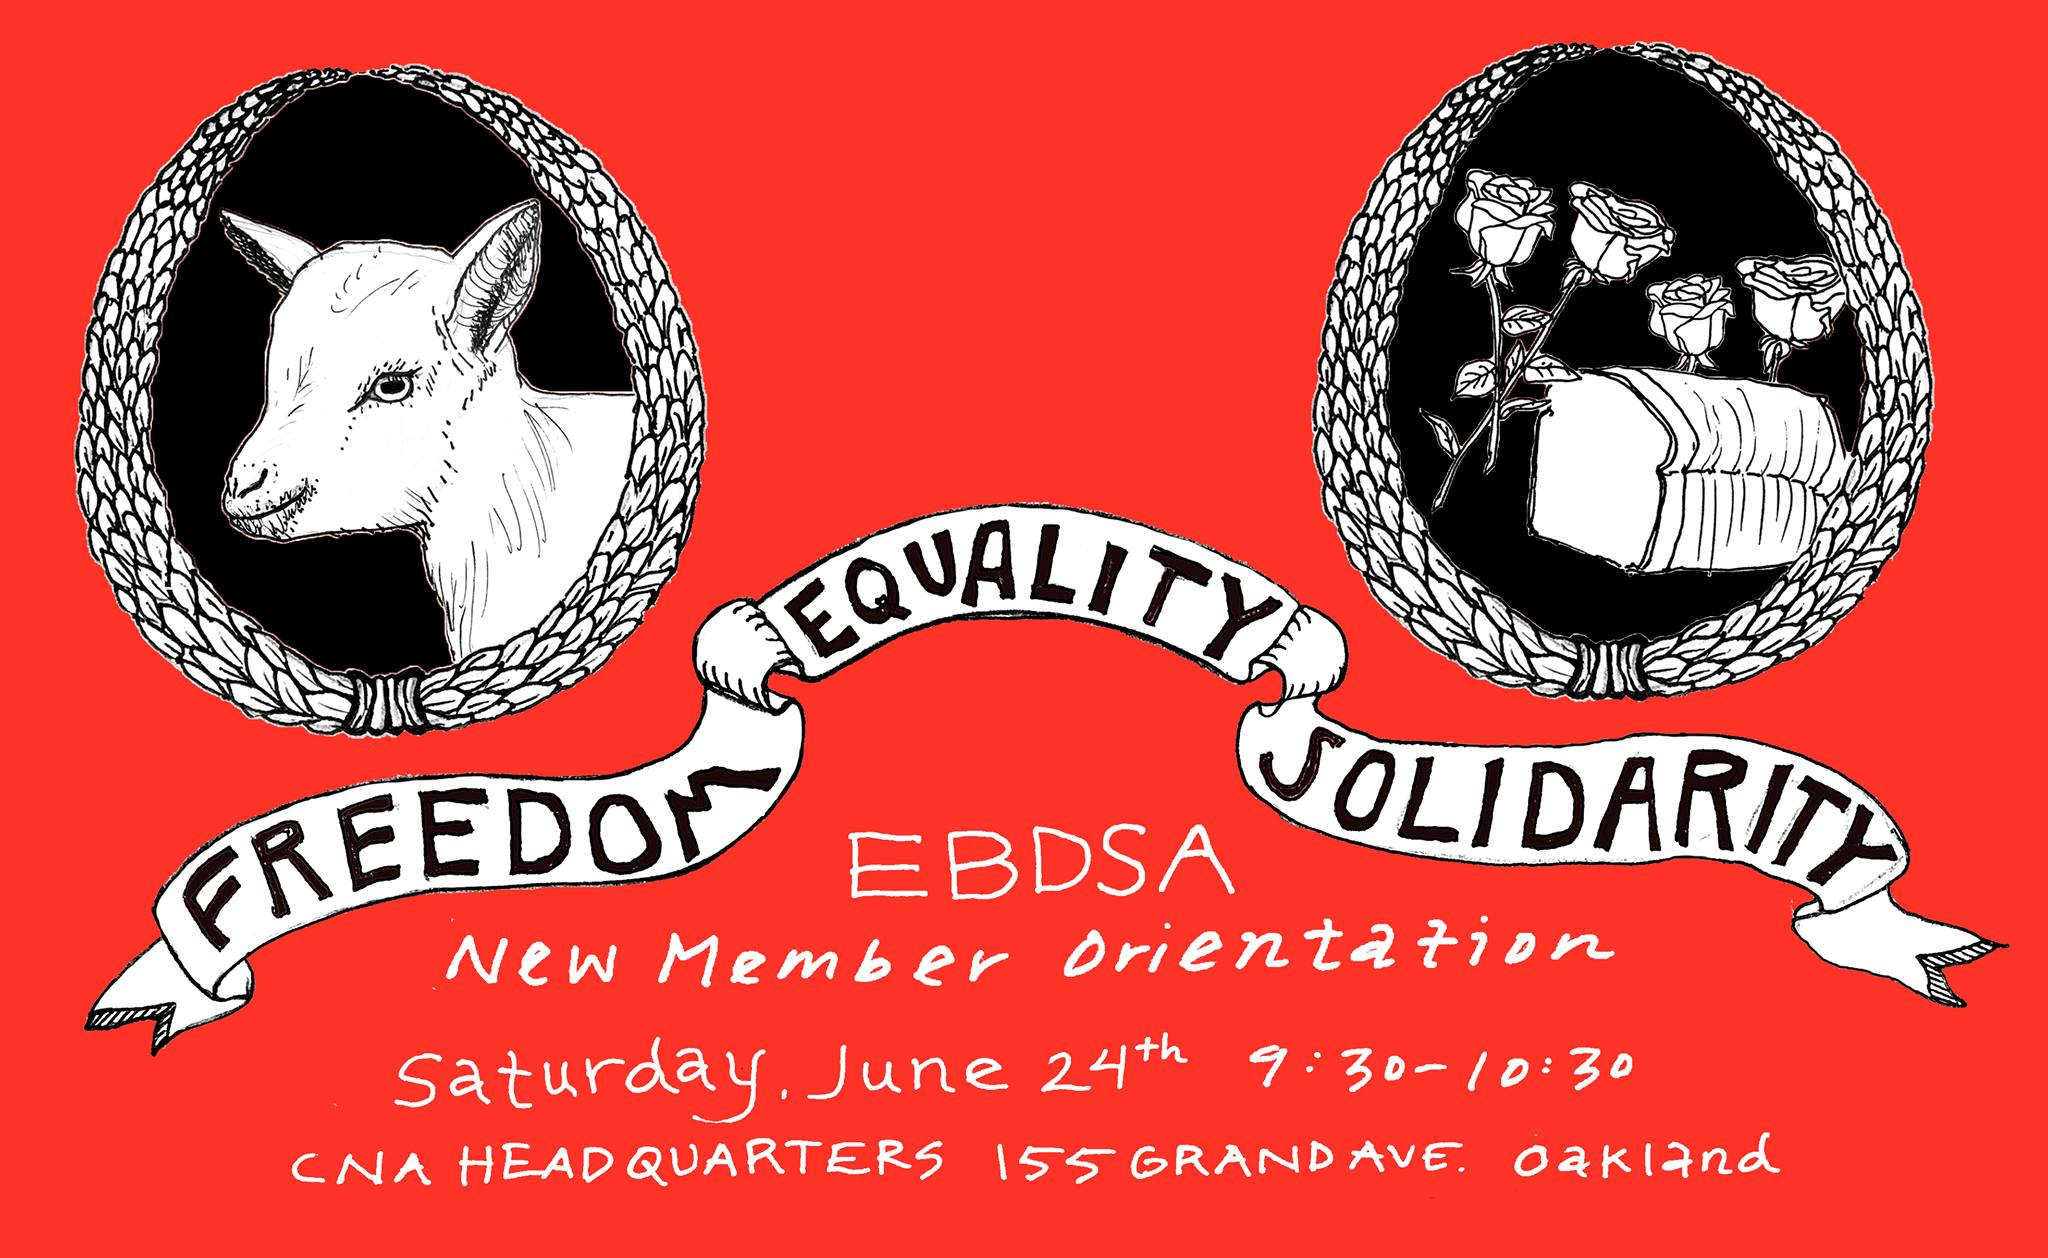 East Bay DSA New Member Orientation, June 24, 2017